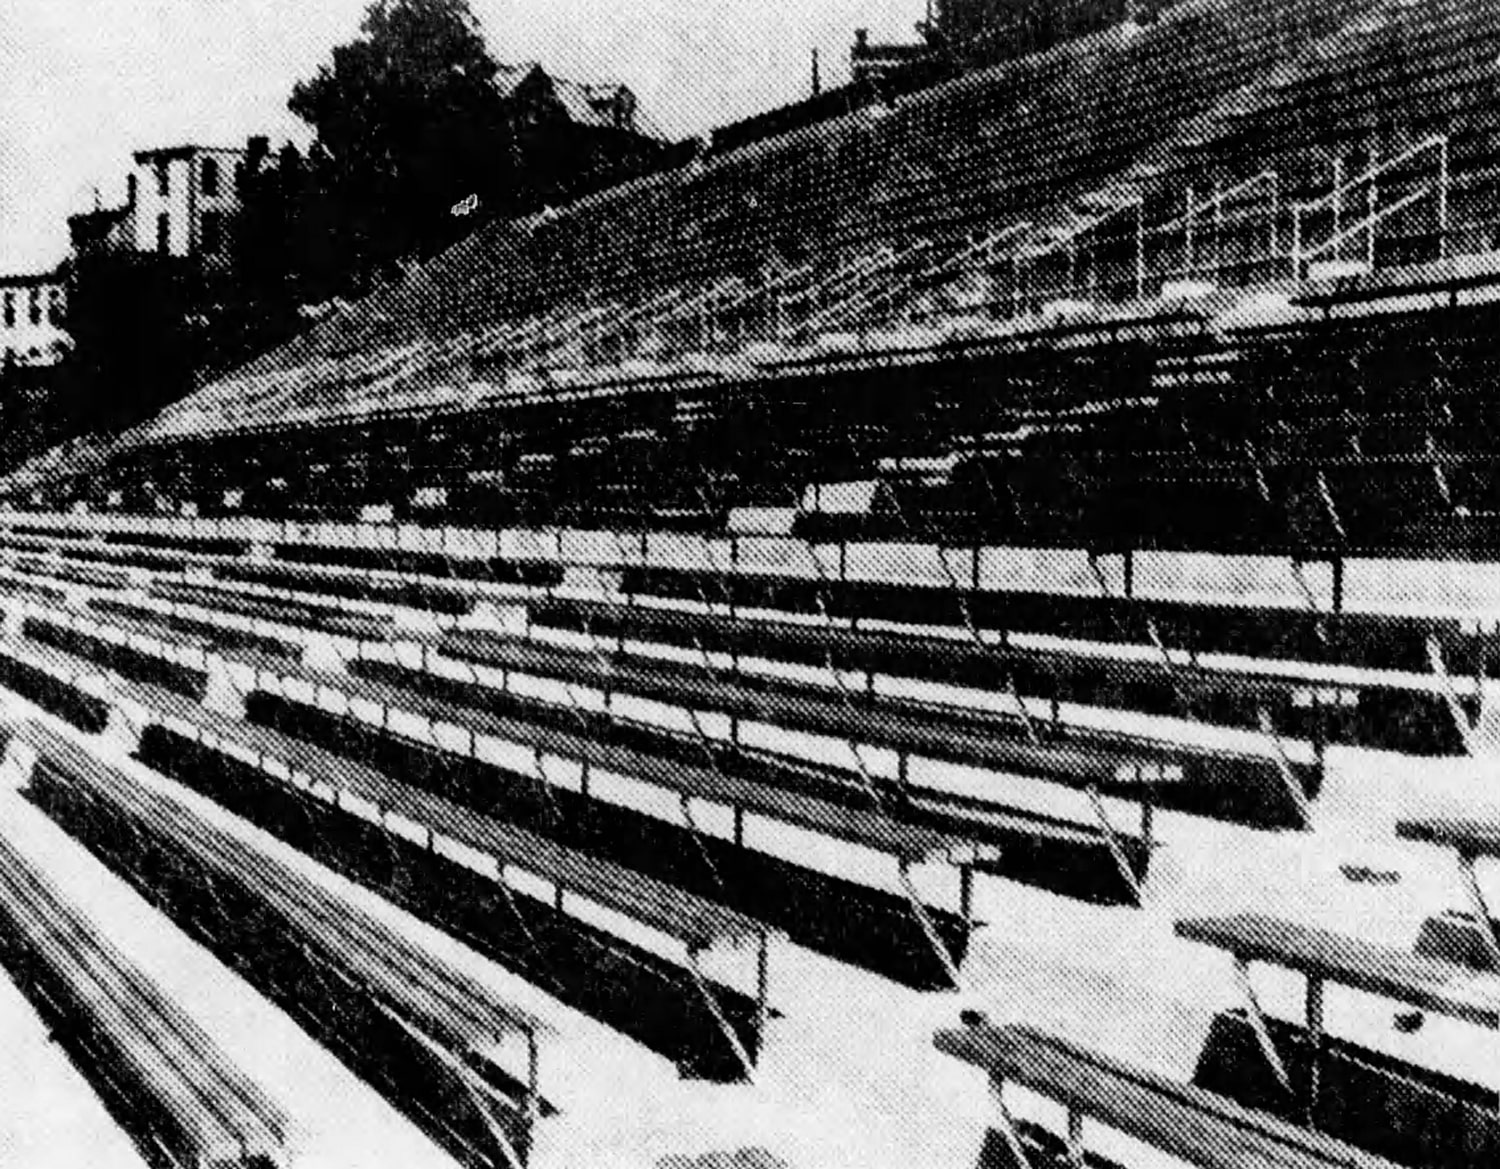 New wooden bleachers, installed to elevate fans from the old, concrete seats. [Enquirer]